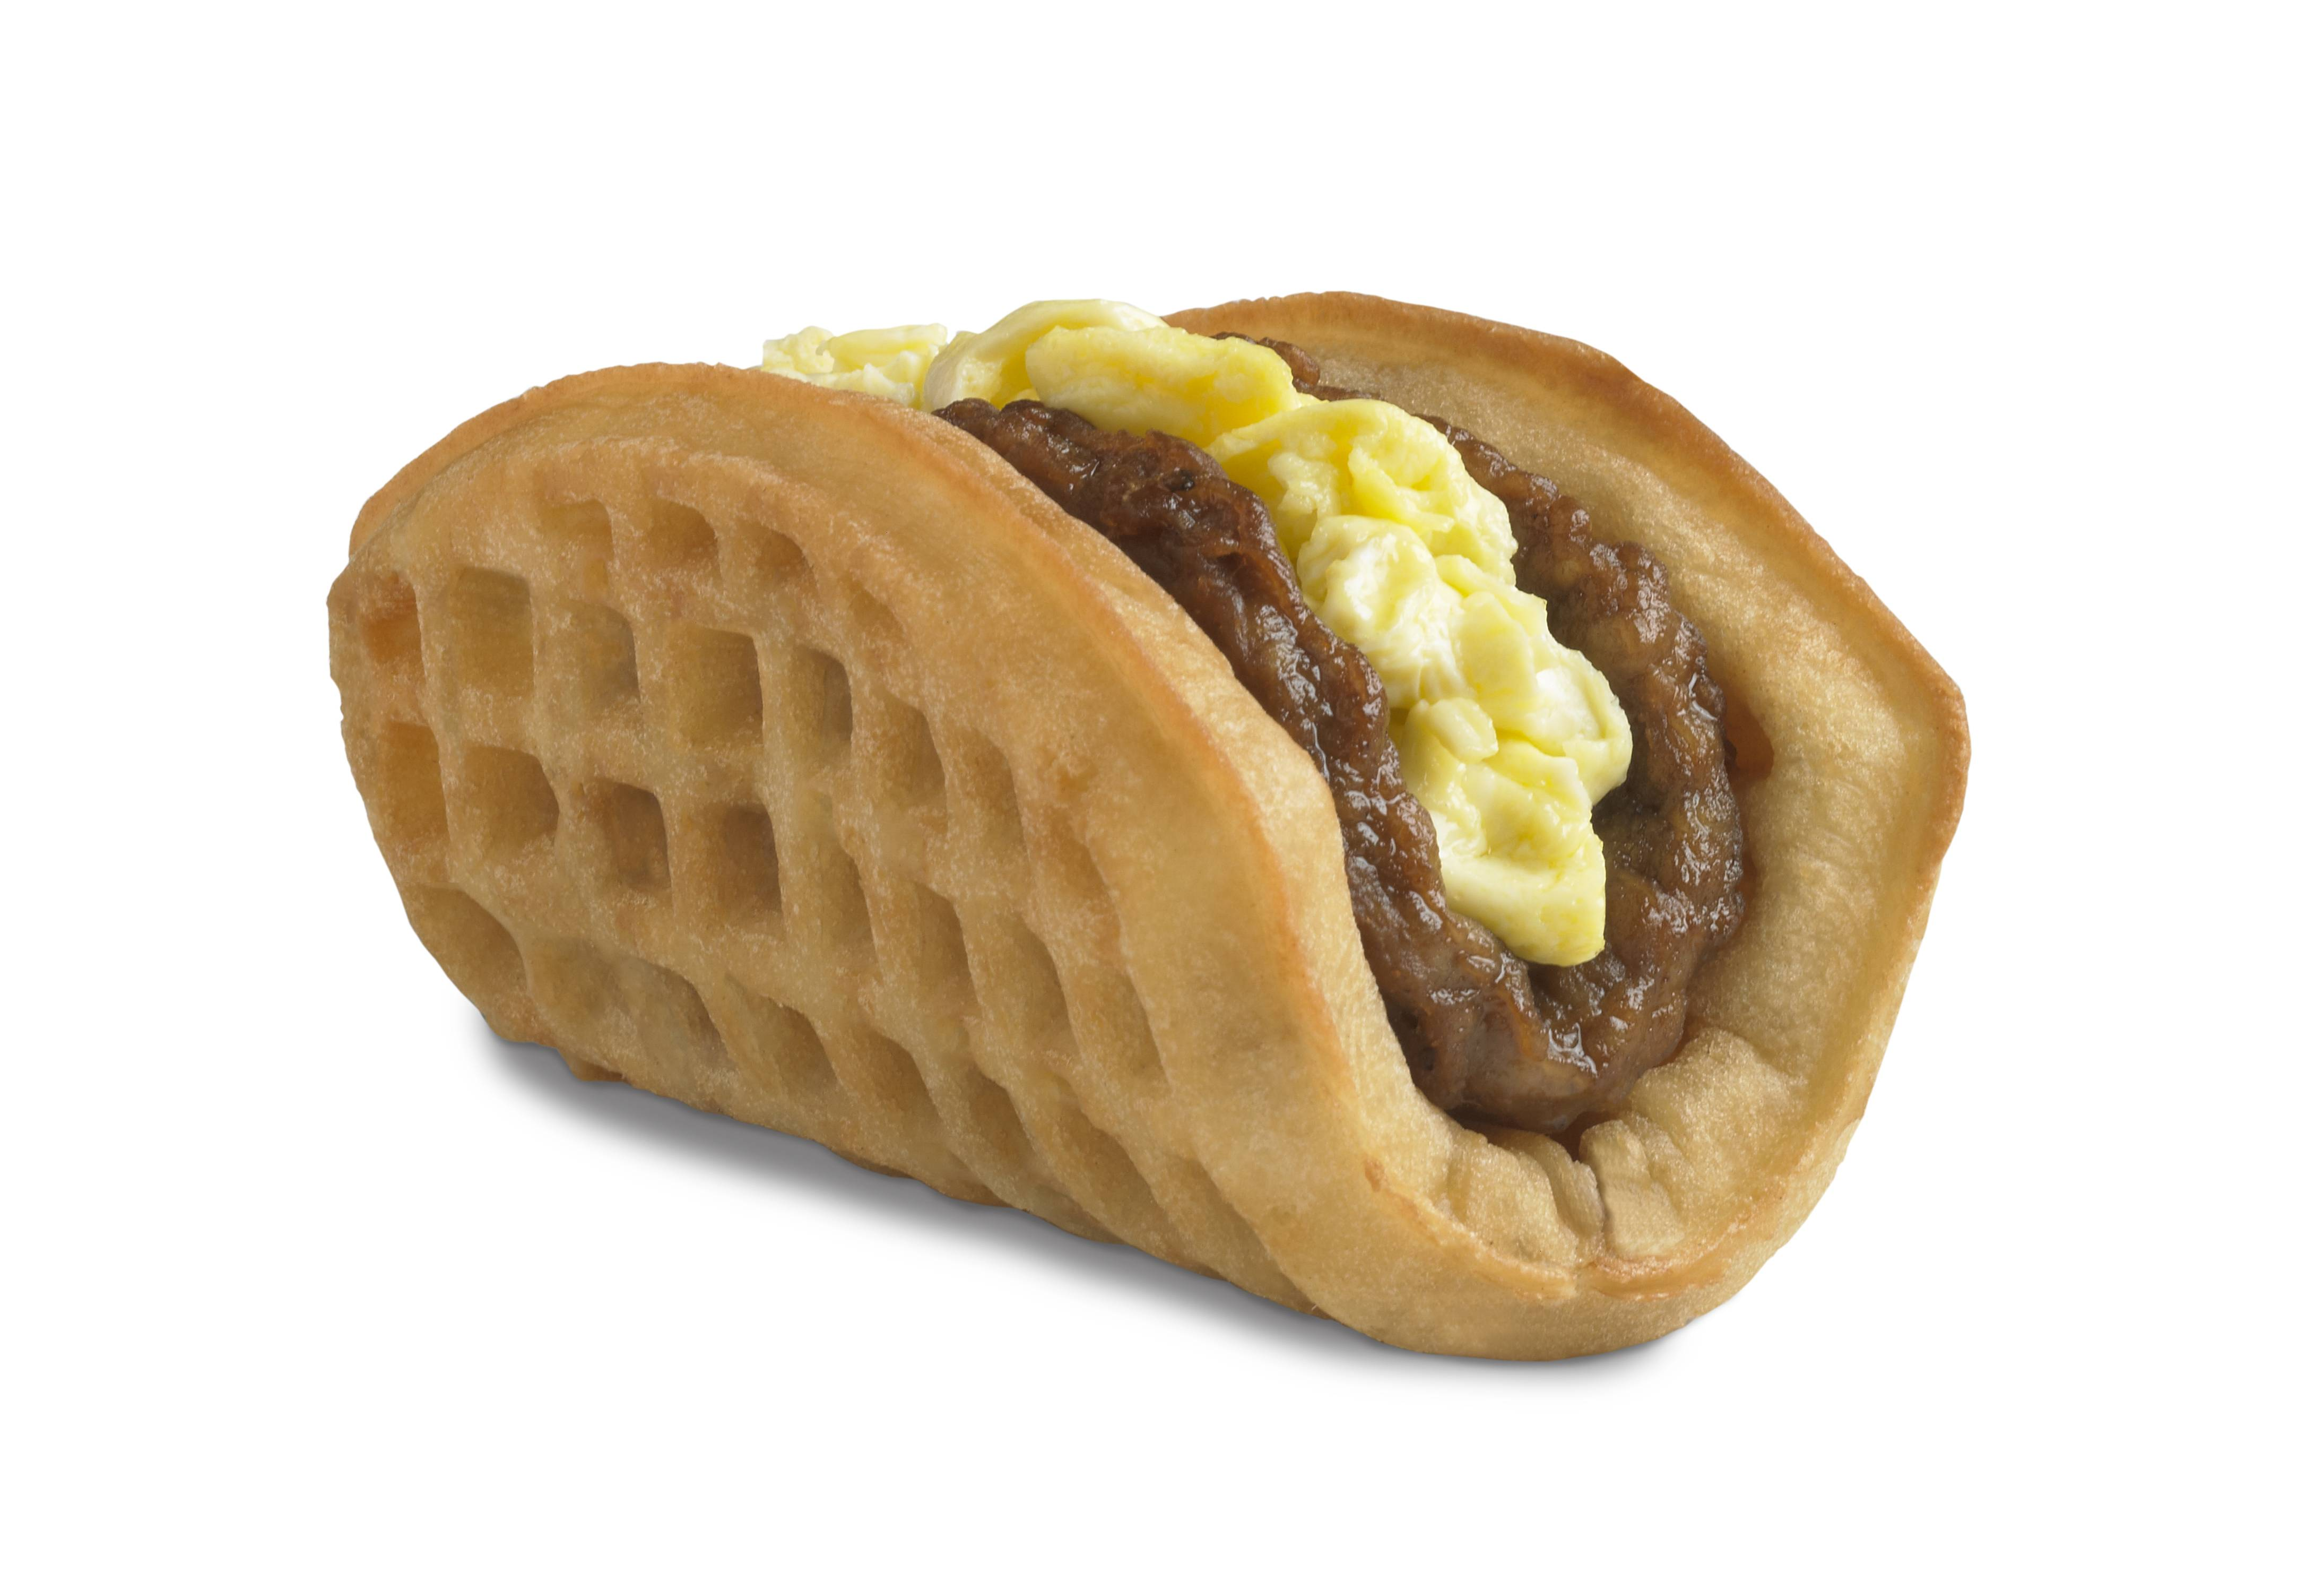 This is Taco Bell's waffle taco, which includes scrambled eggs, sausage and a side of syrup. It was the top seller during breakfast hours at the five Southern California restaurants where they were tested earlier this year.